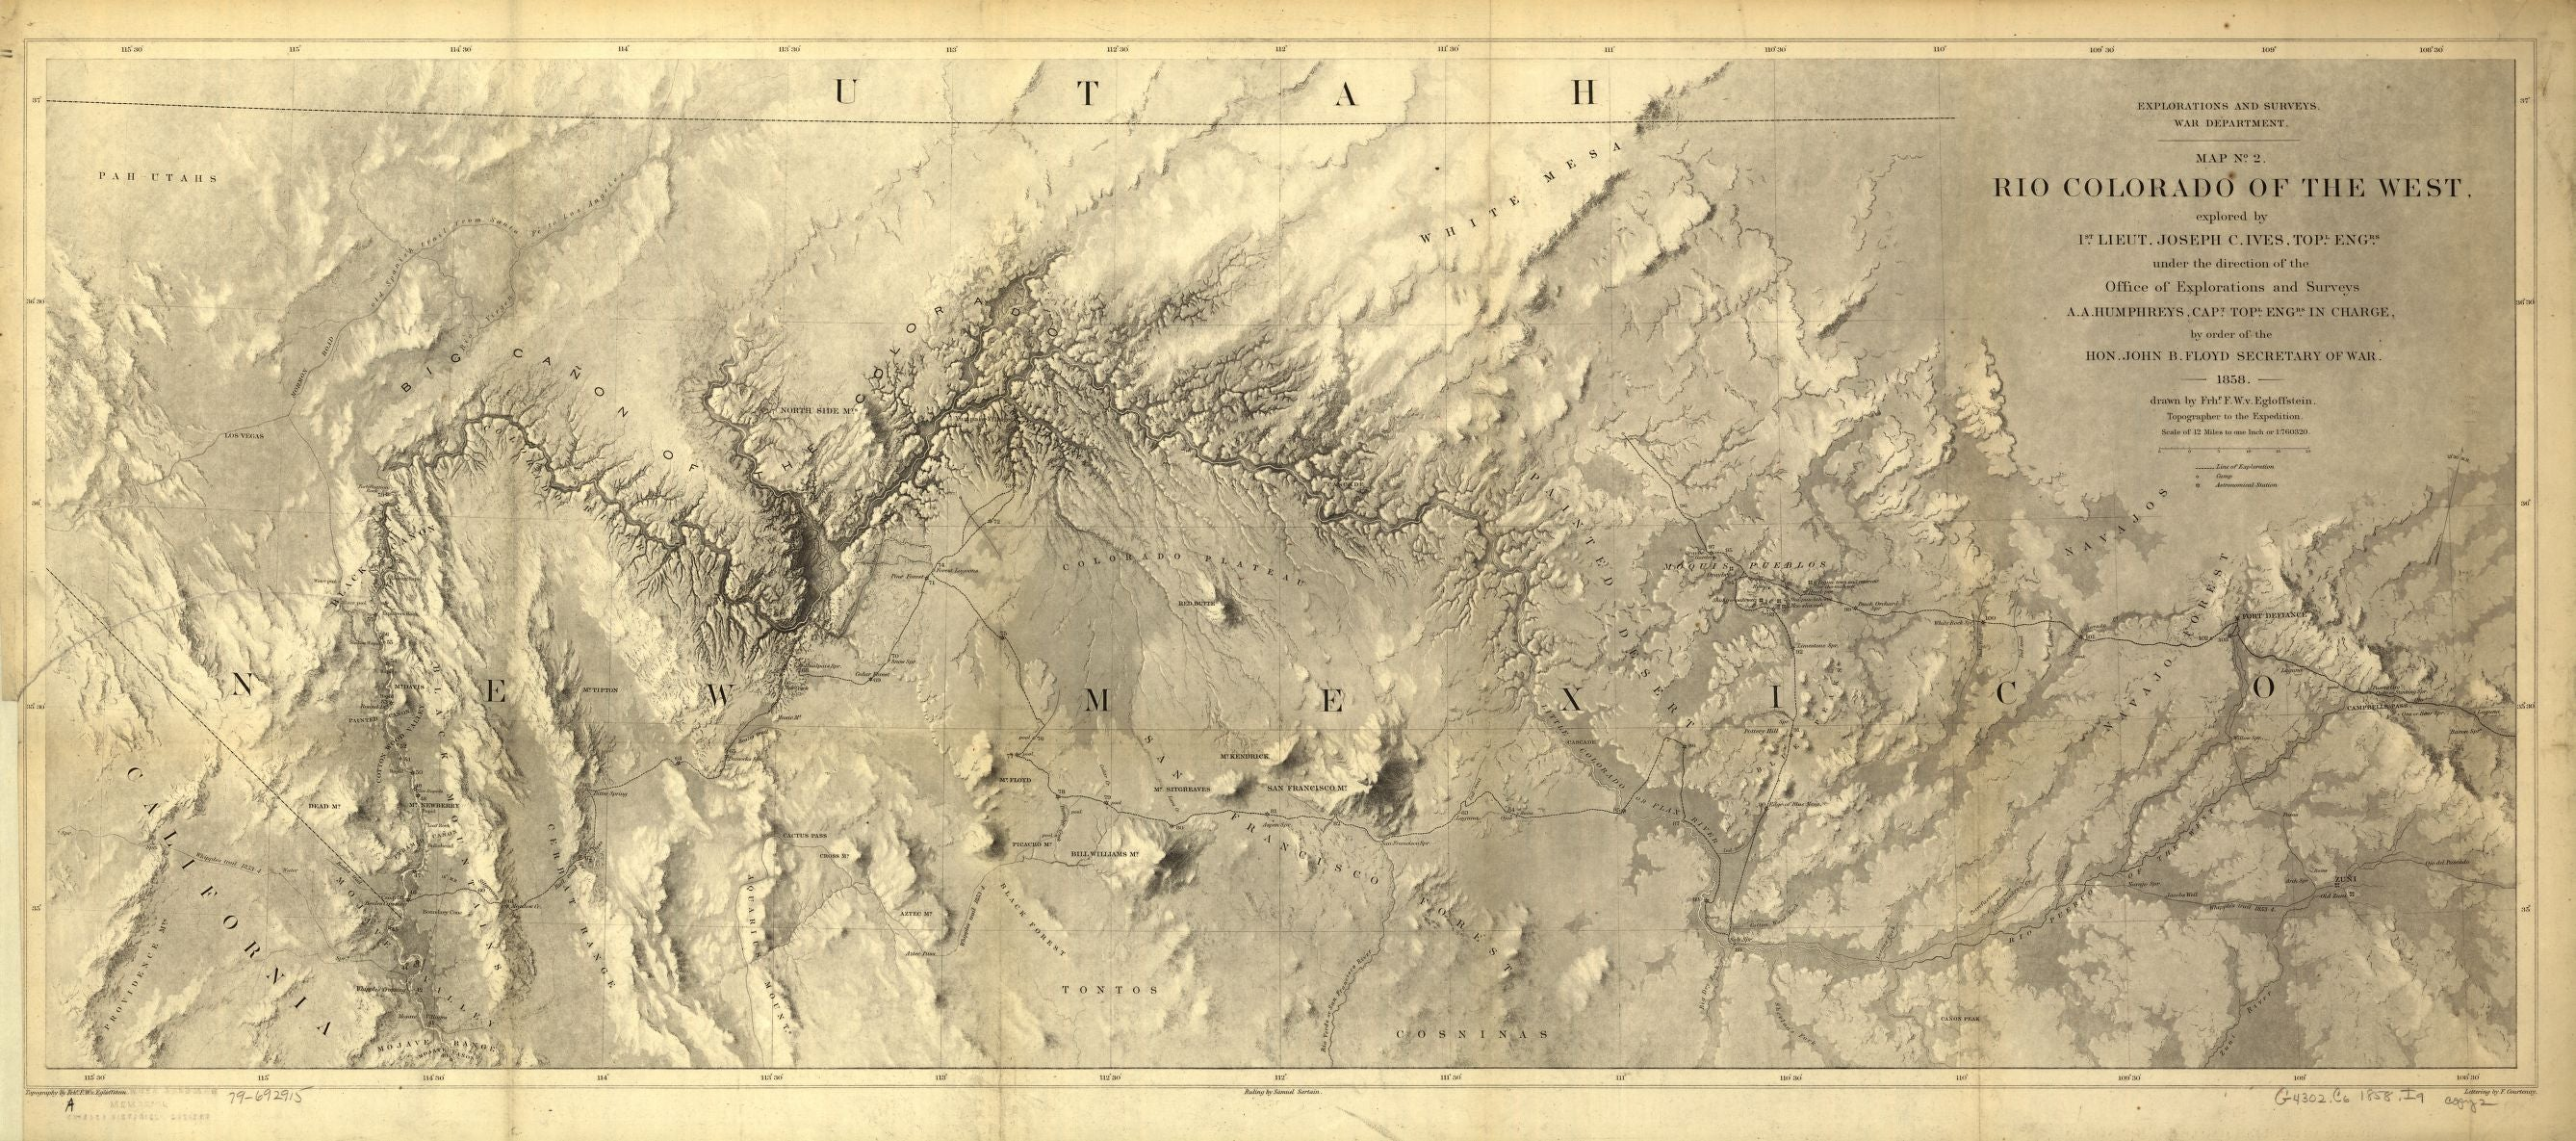 1858 Rio Colorado of the West